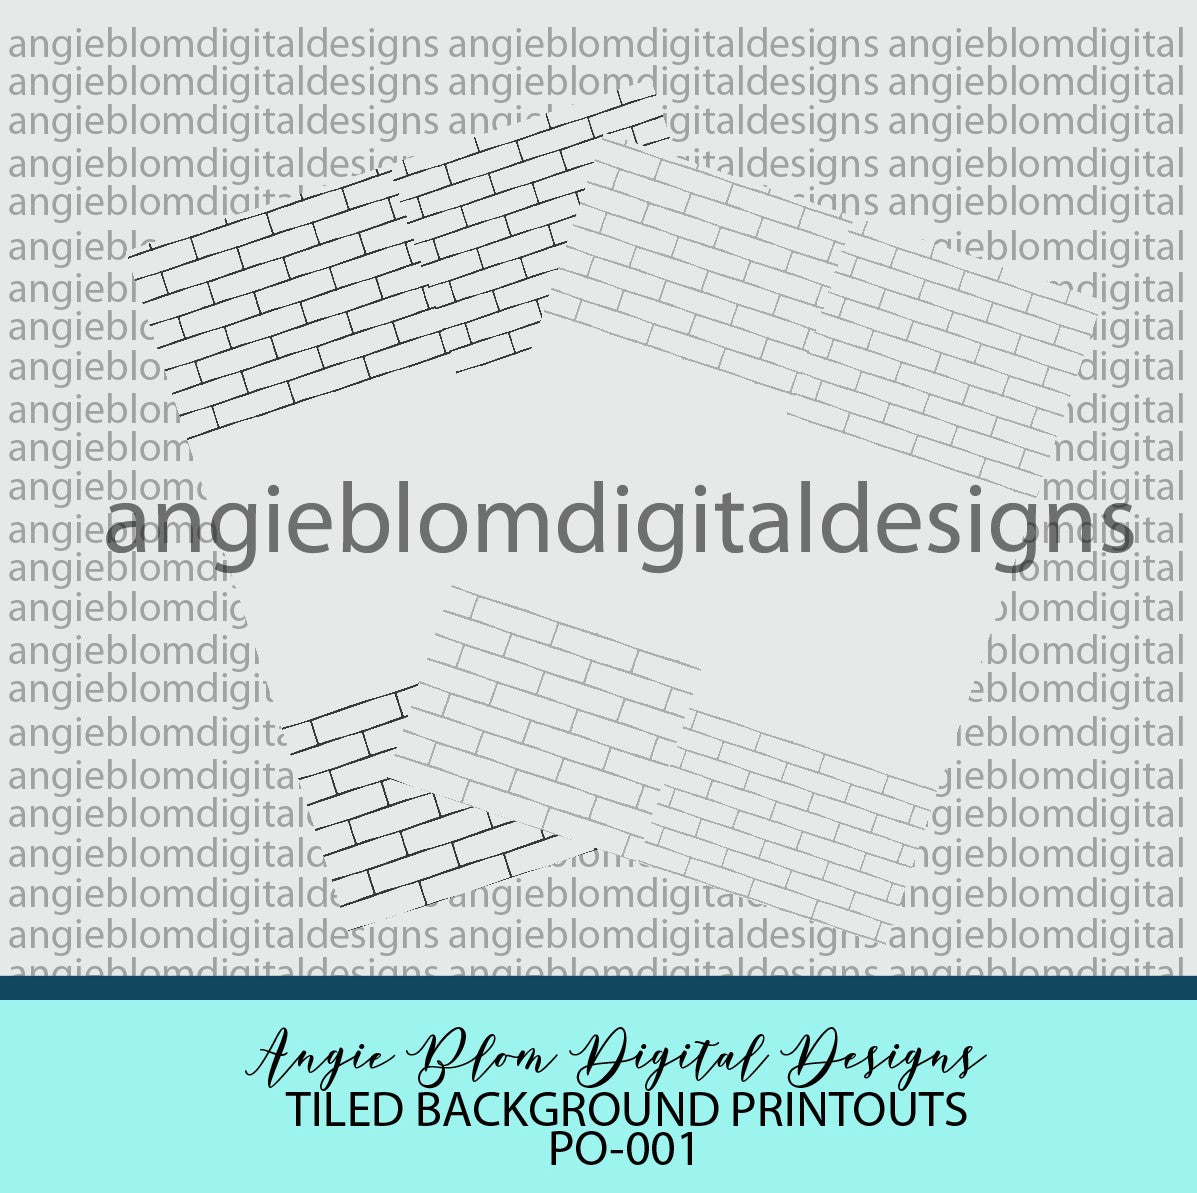 Tiled Background printouts